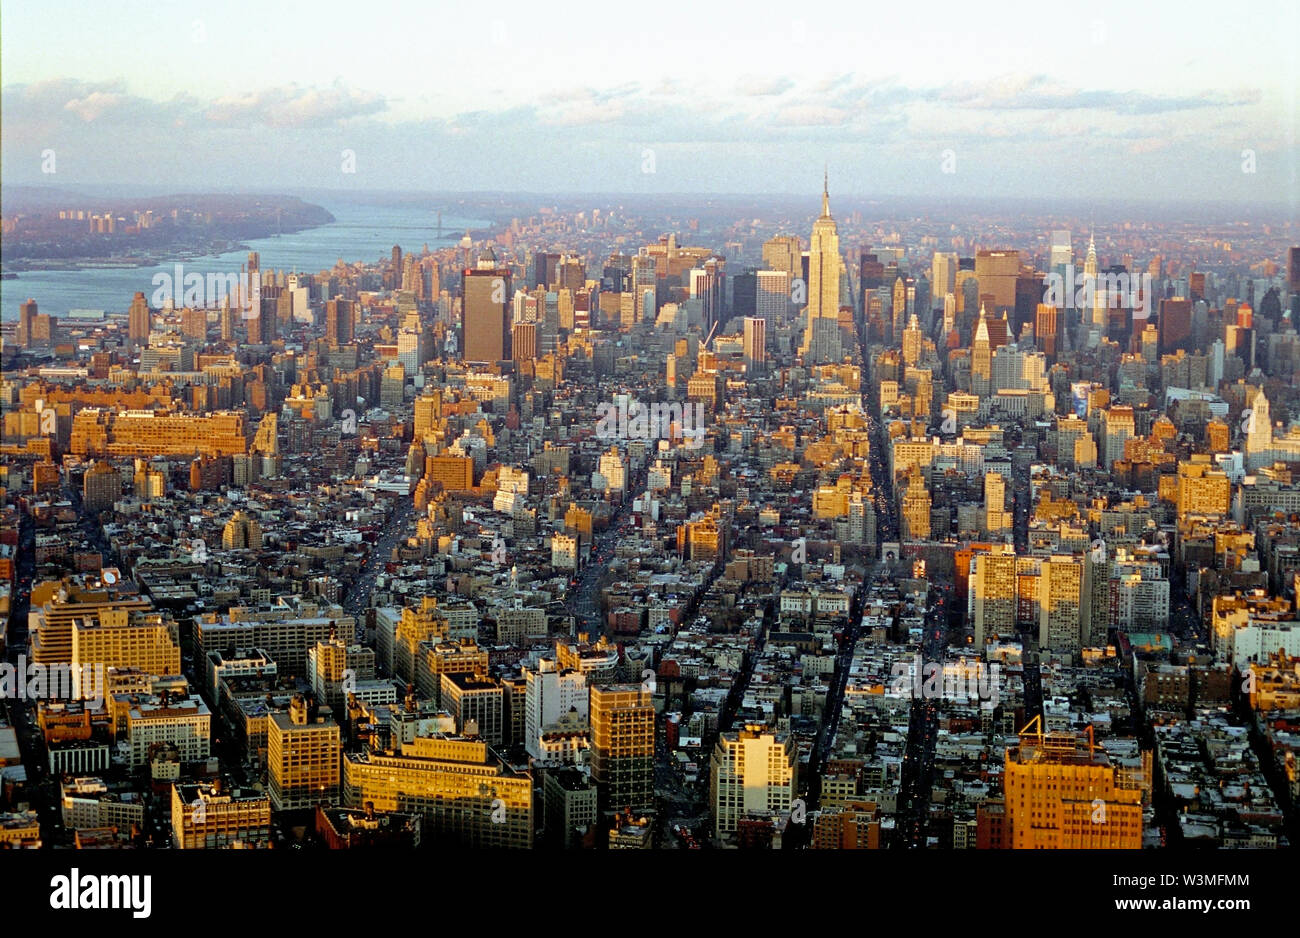 Historical View of  Manhattan cityscape from the top of World Trade Center, New York City, New York, United States of America, North America - Stock Image